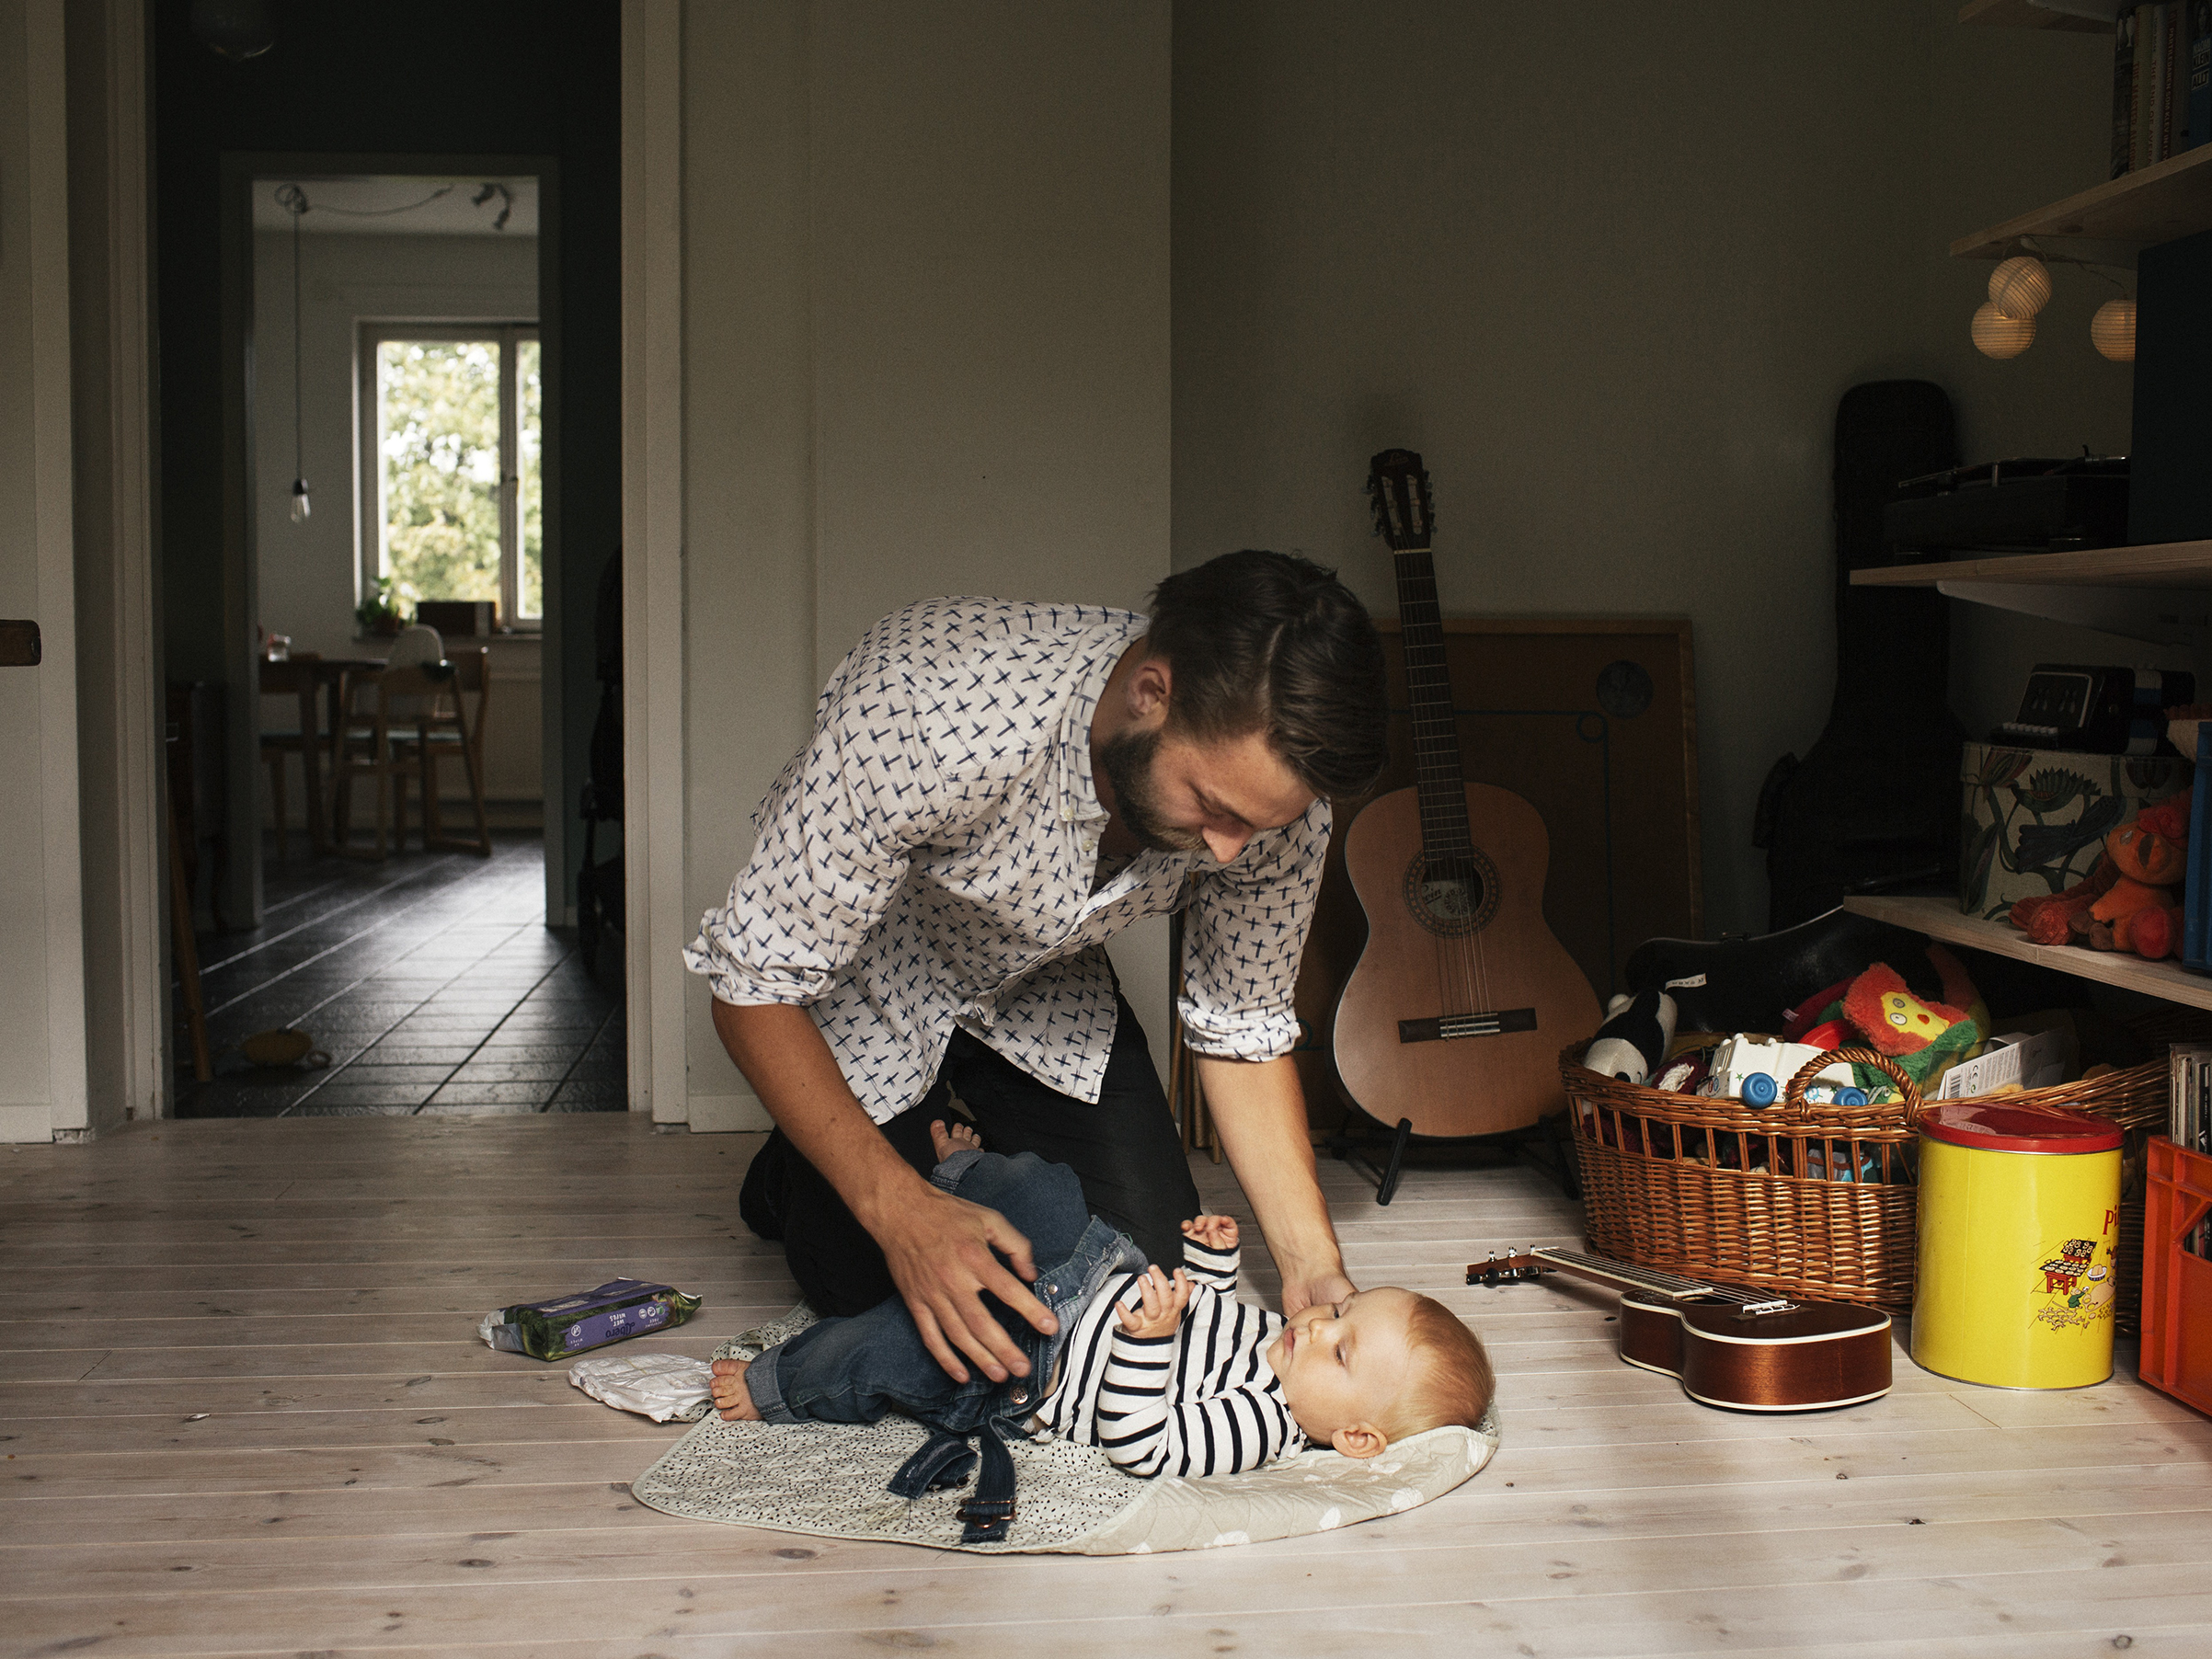 Martin Gunseus, 30, with 9-month-old son Pim, on Sept. 18 in Stockholm, two weeks into his scheduled eight-month paternity leave